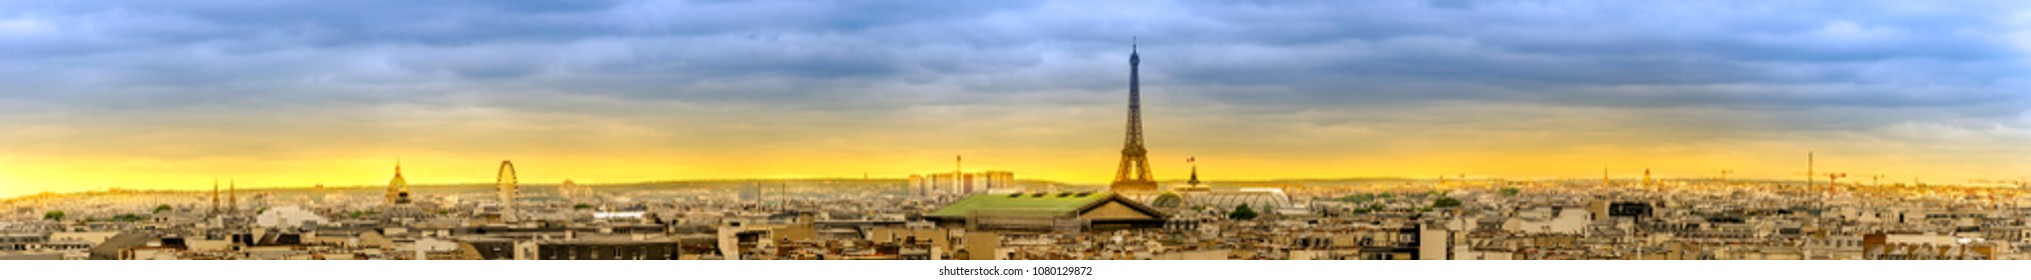 Wide aerial panorama of Paris skyline at sunset with view of most of landmarks, Eiffel tower, Invalides, Pantheon, Ferris wheel, Madeleine, Grand Palais, Notre Dame, Sainte-Chapelle, Petit Palais